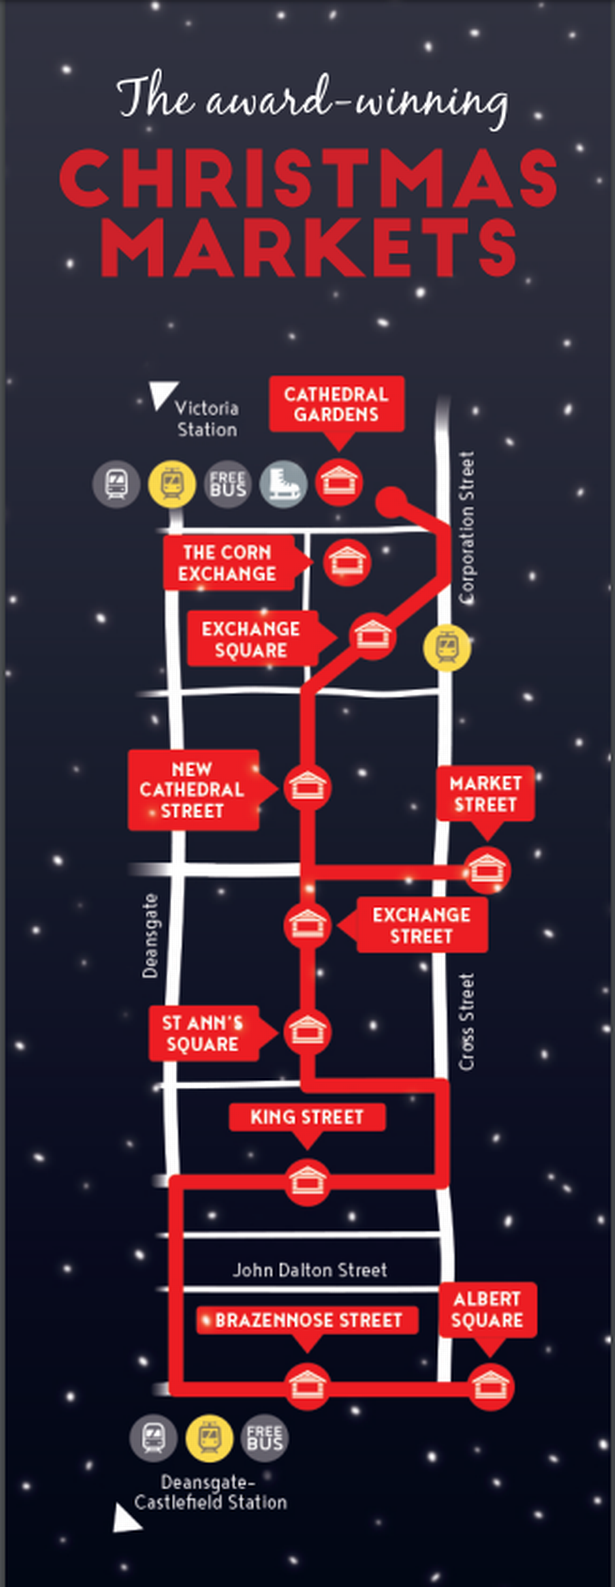 market-trail-map